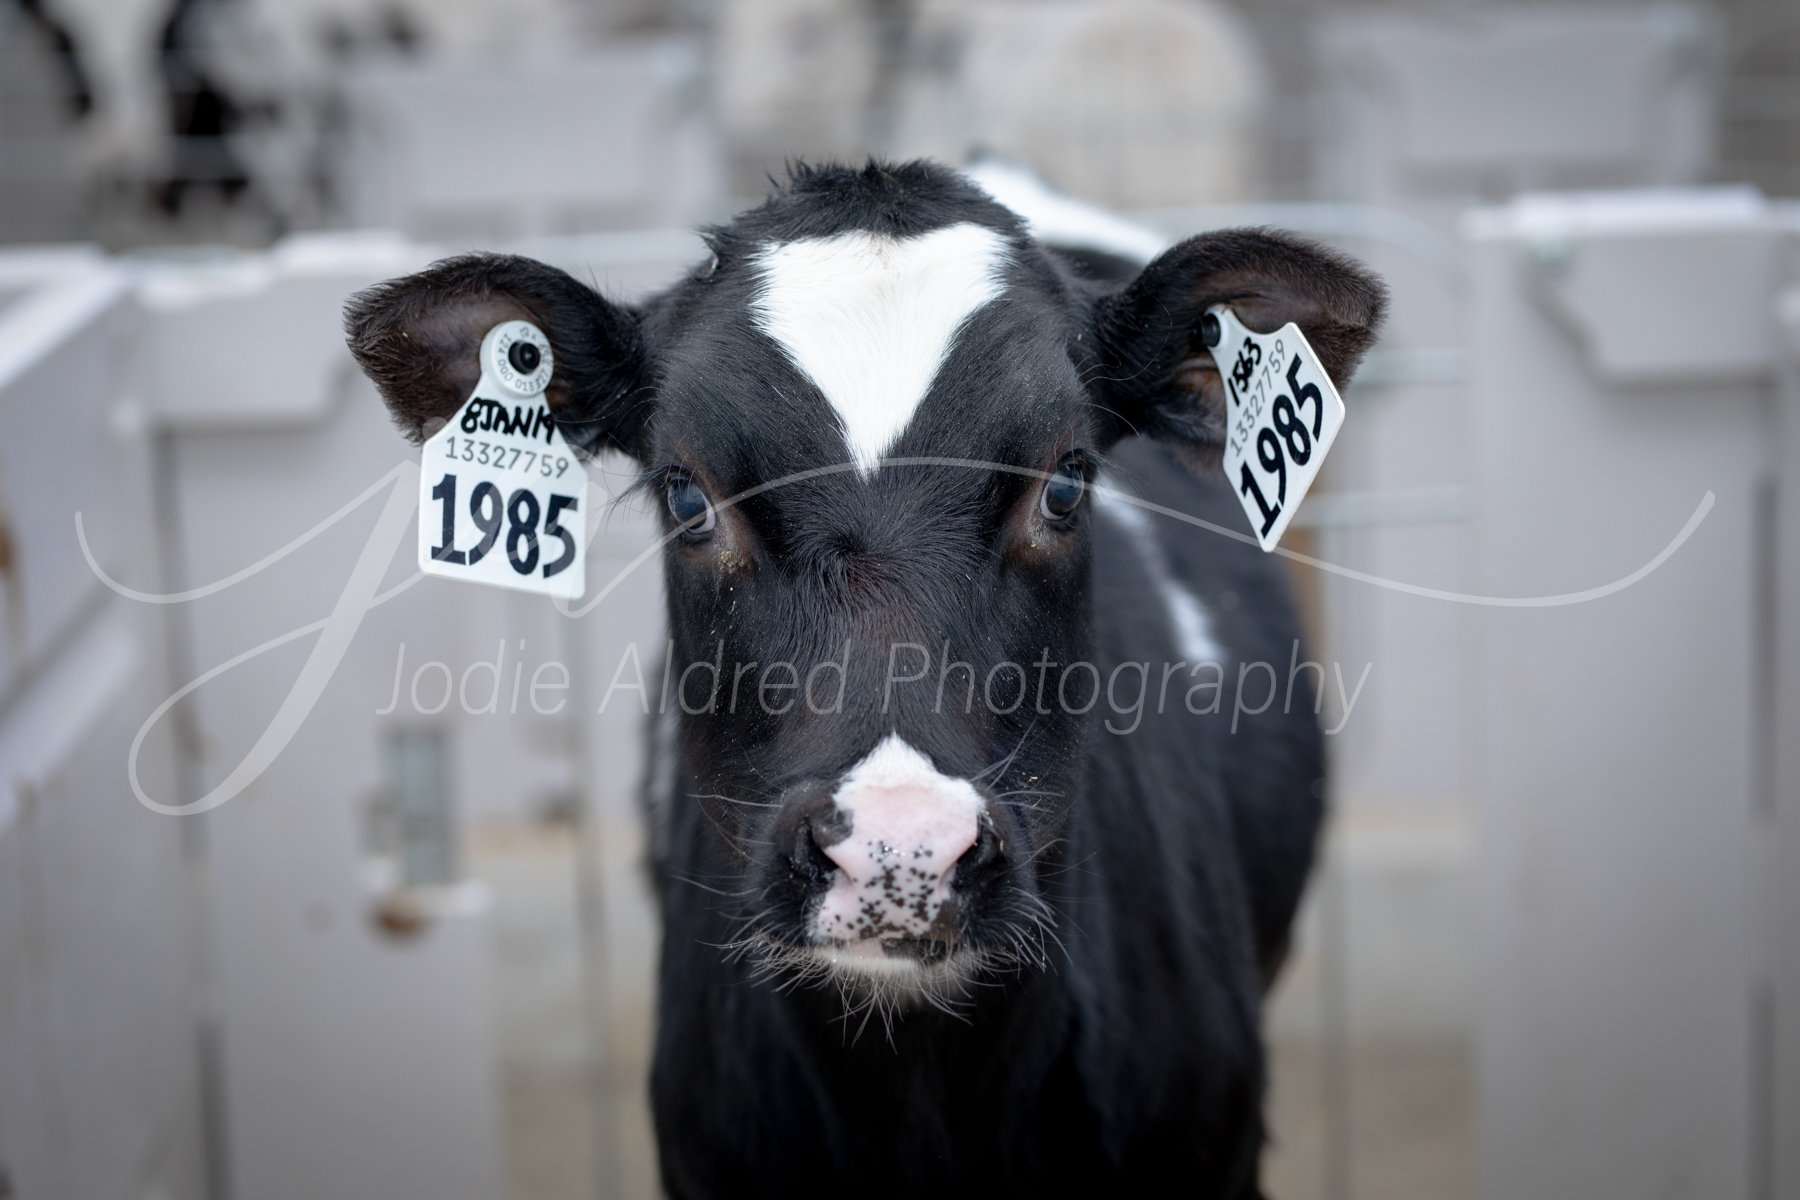 farm-agriculture-rural-farming-cattle-agricultural-photography-jodie-aldred-elgin-huron-middlesex-lambton-london-ontario-canada-agriculture-dairy-calf.jpg